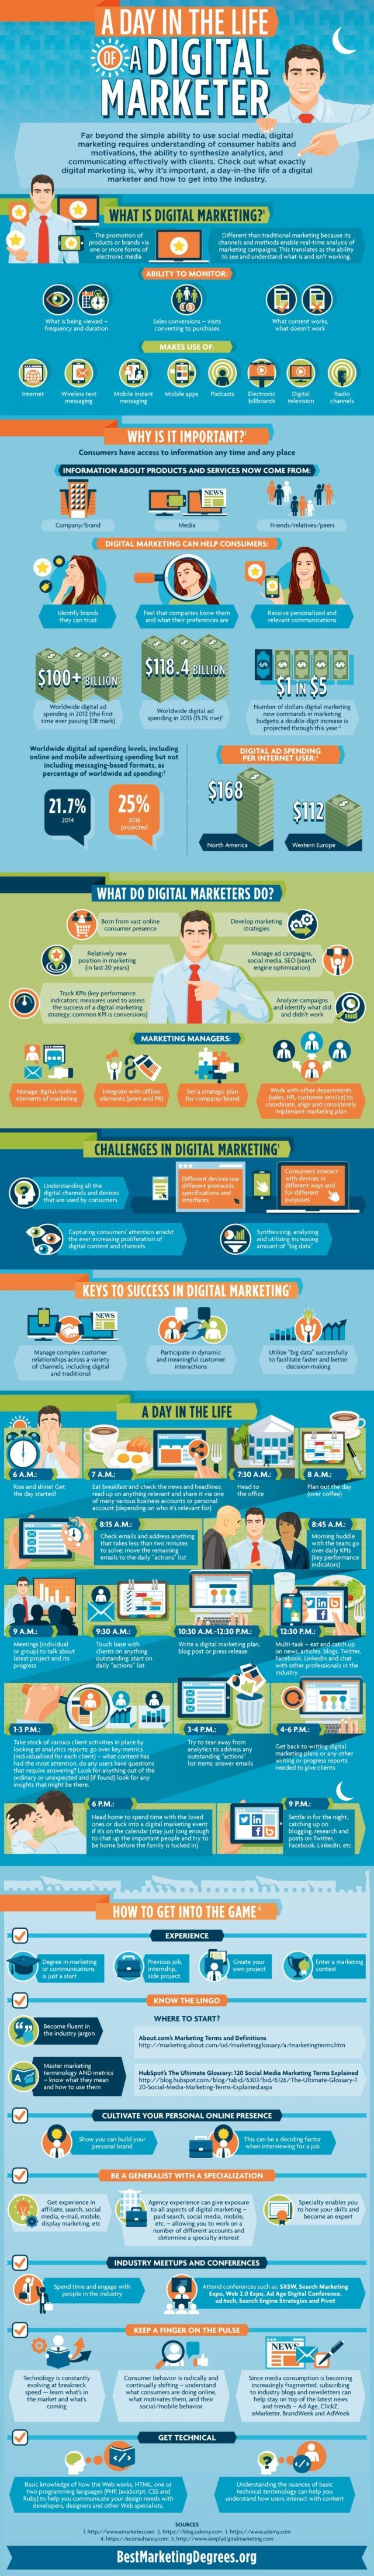 What does a Digital Marketer Do?